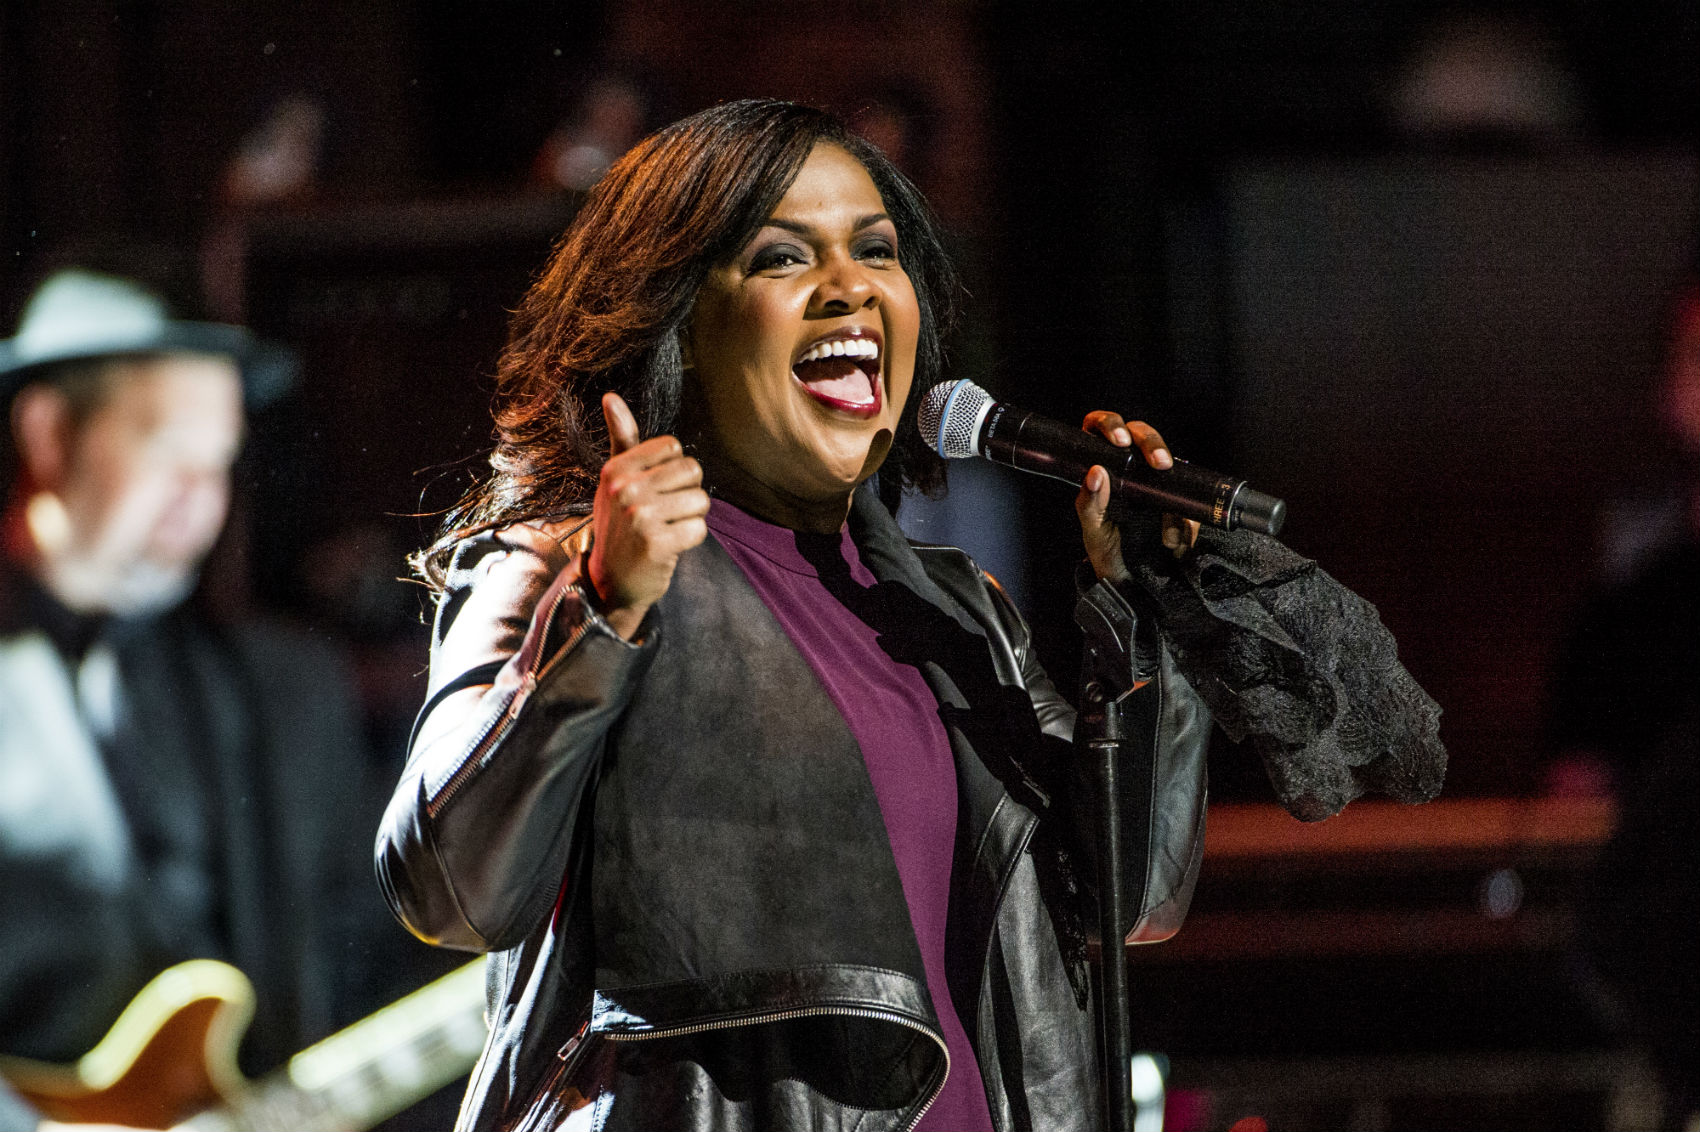 CeCe Winans performs in New York City on March 9, 2017. (Amy Harris/Invision/AP)